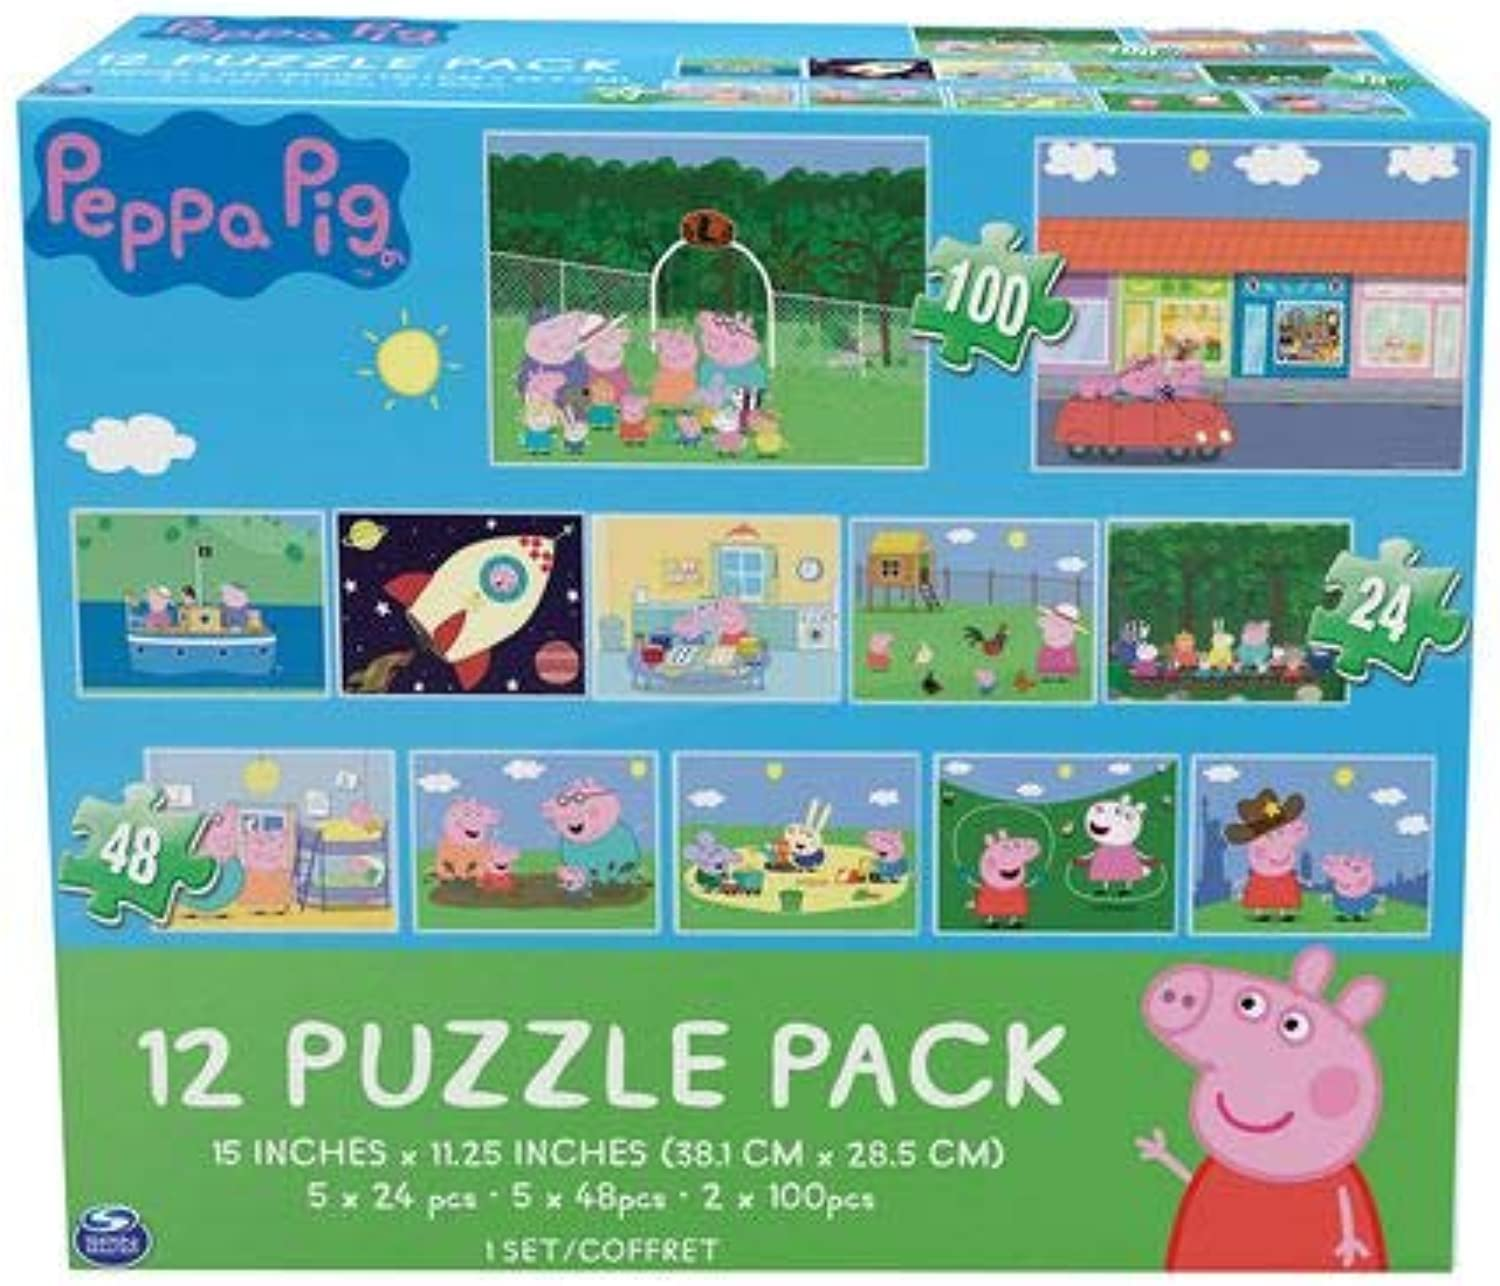 Peppa Pig Cardinal Games 12 Puzzle Pack